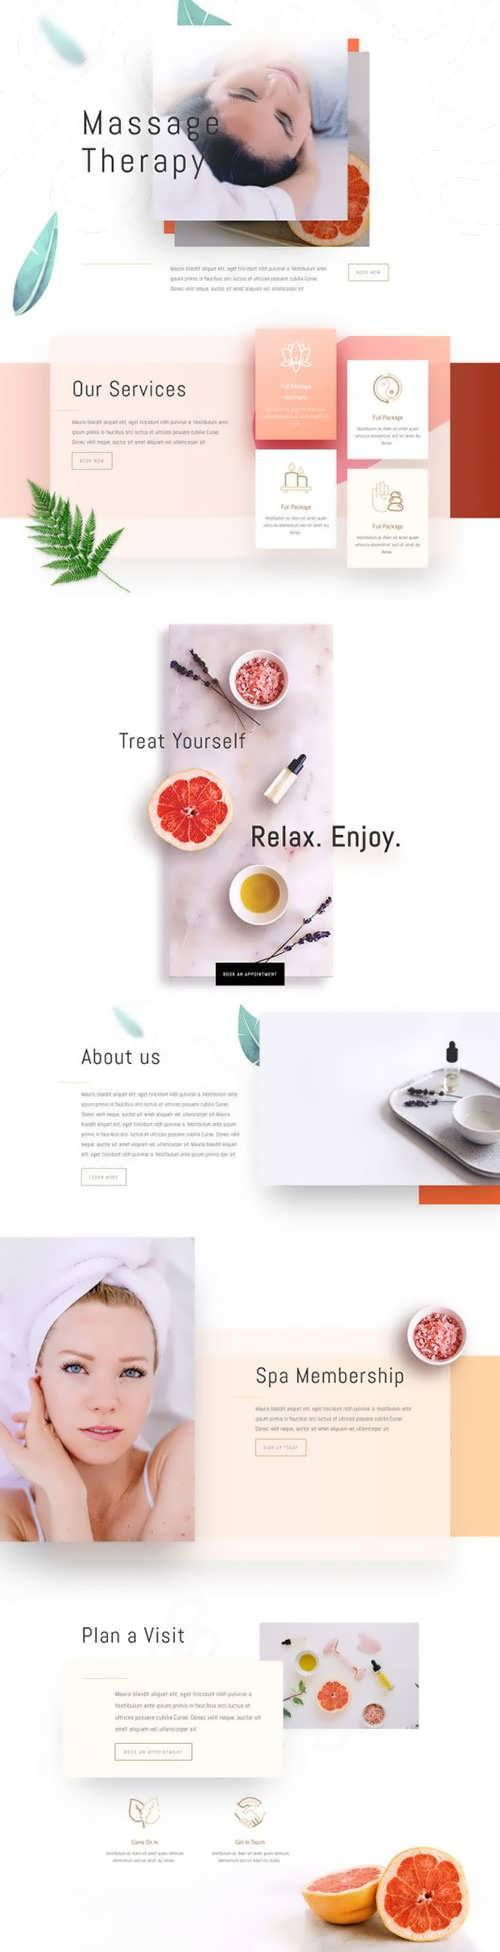 massage therapy landing page